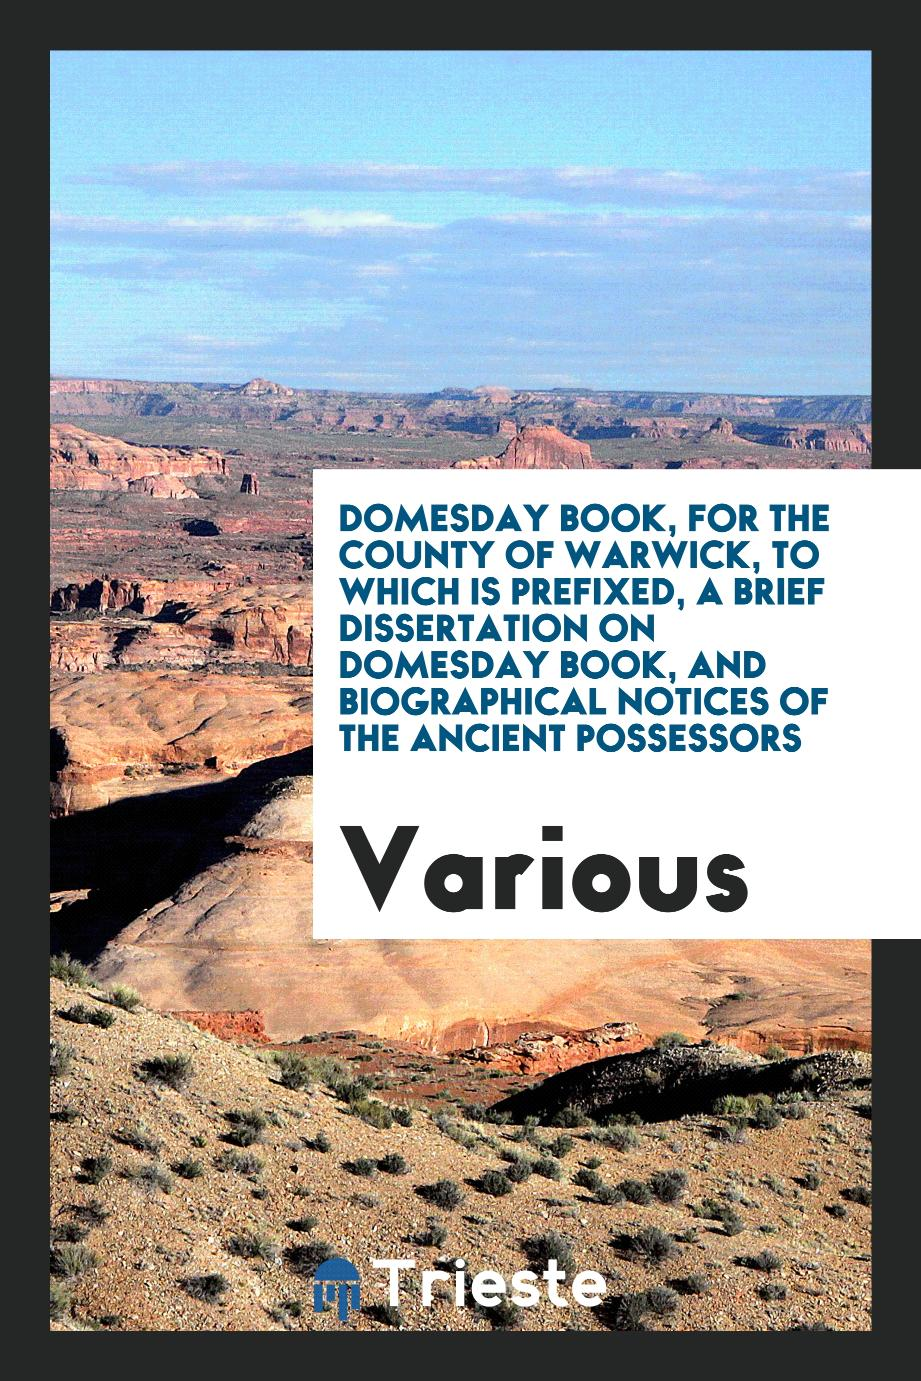 Domesday Book, for the County of Warwick, to Which Is Prefixed, A Brief Dissertation on Domesday Book, and Biographical Notices of the Ancient Possessors